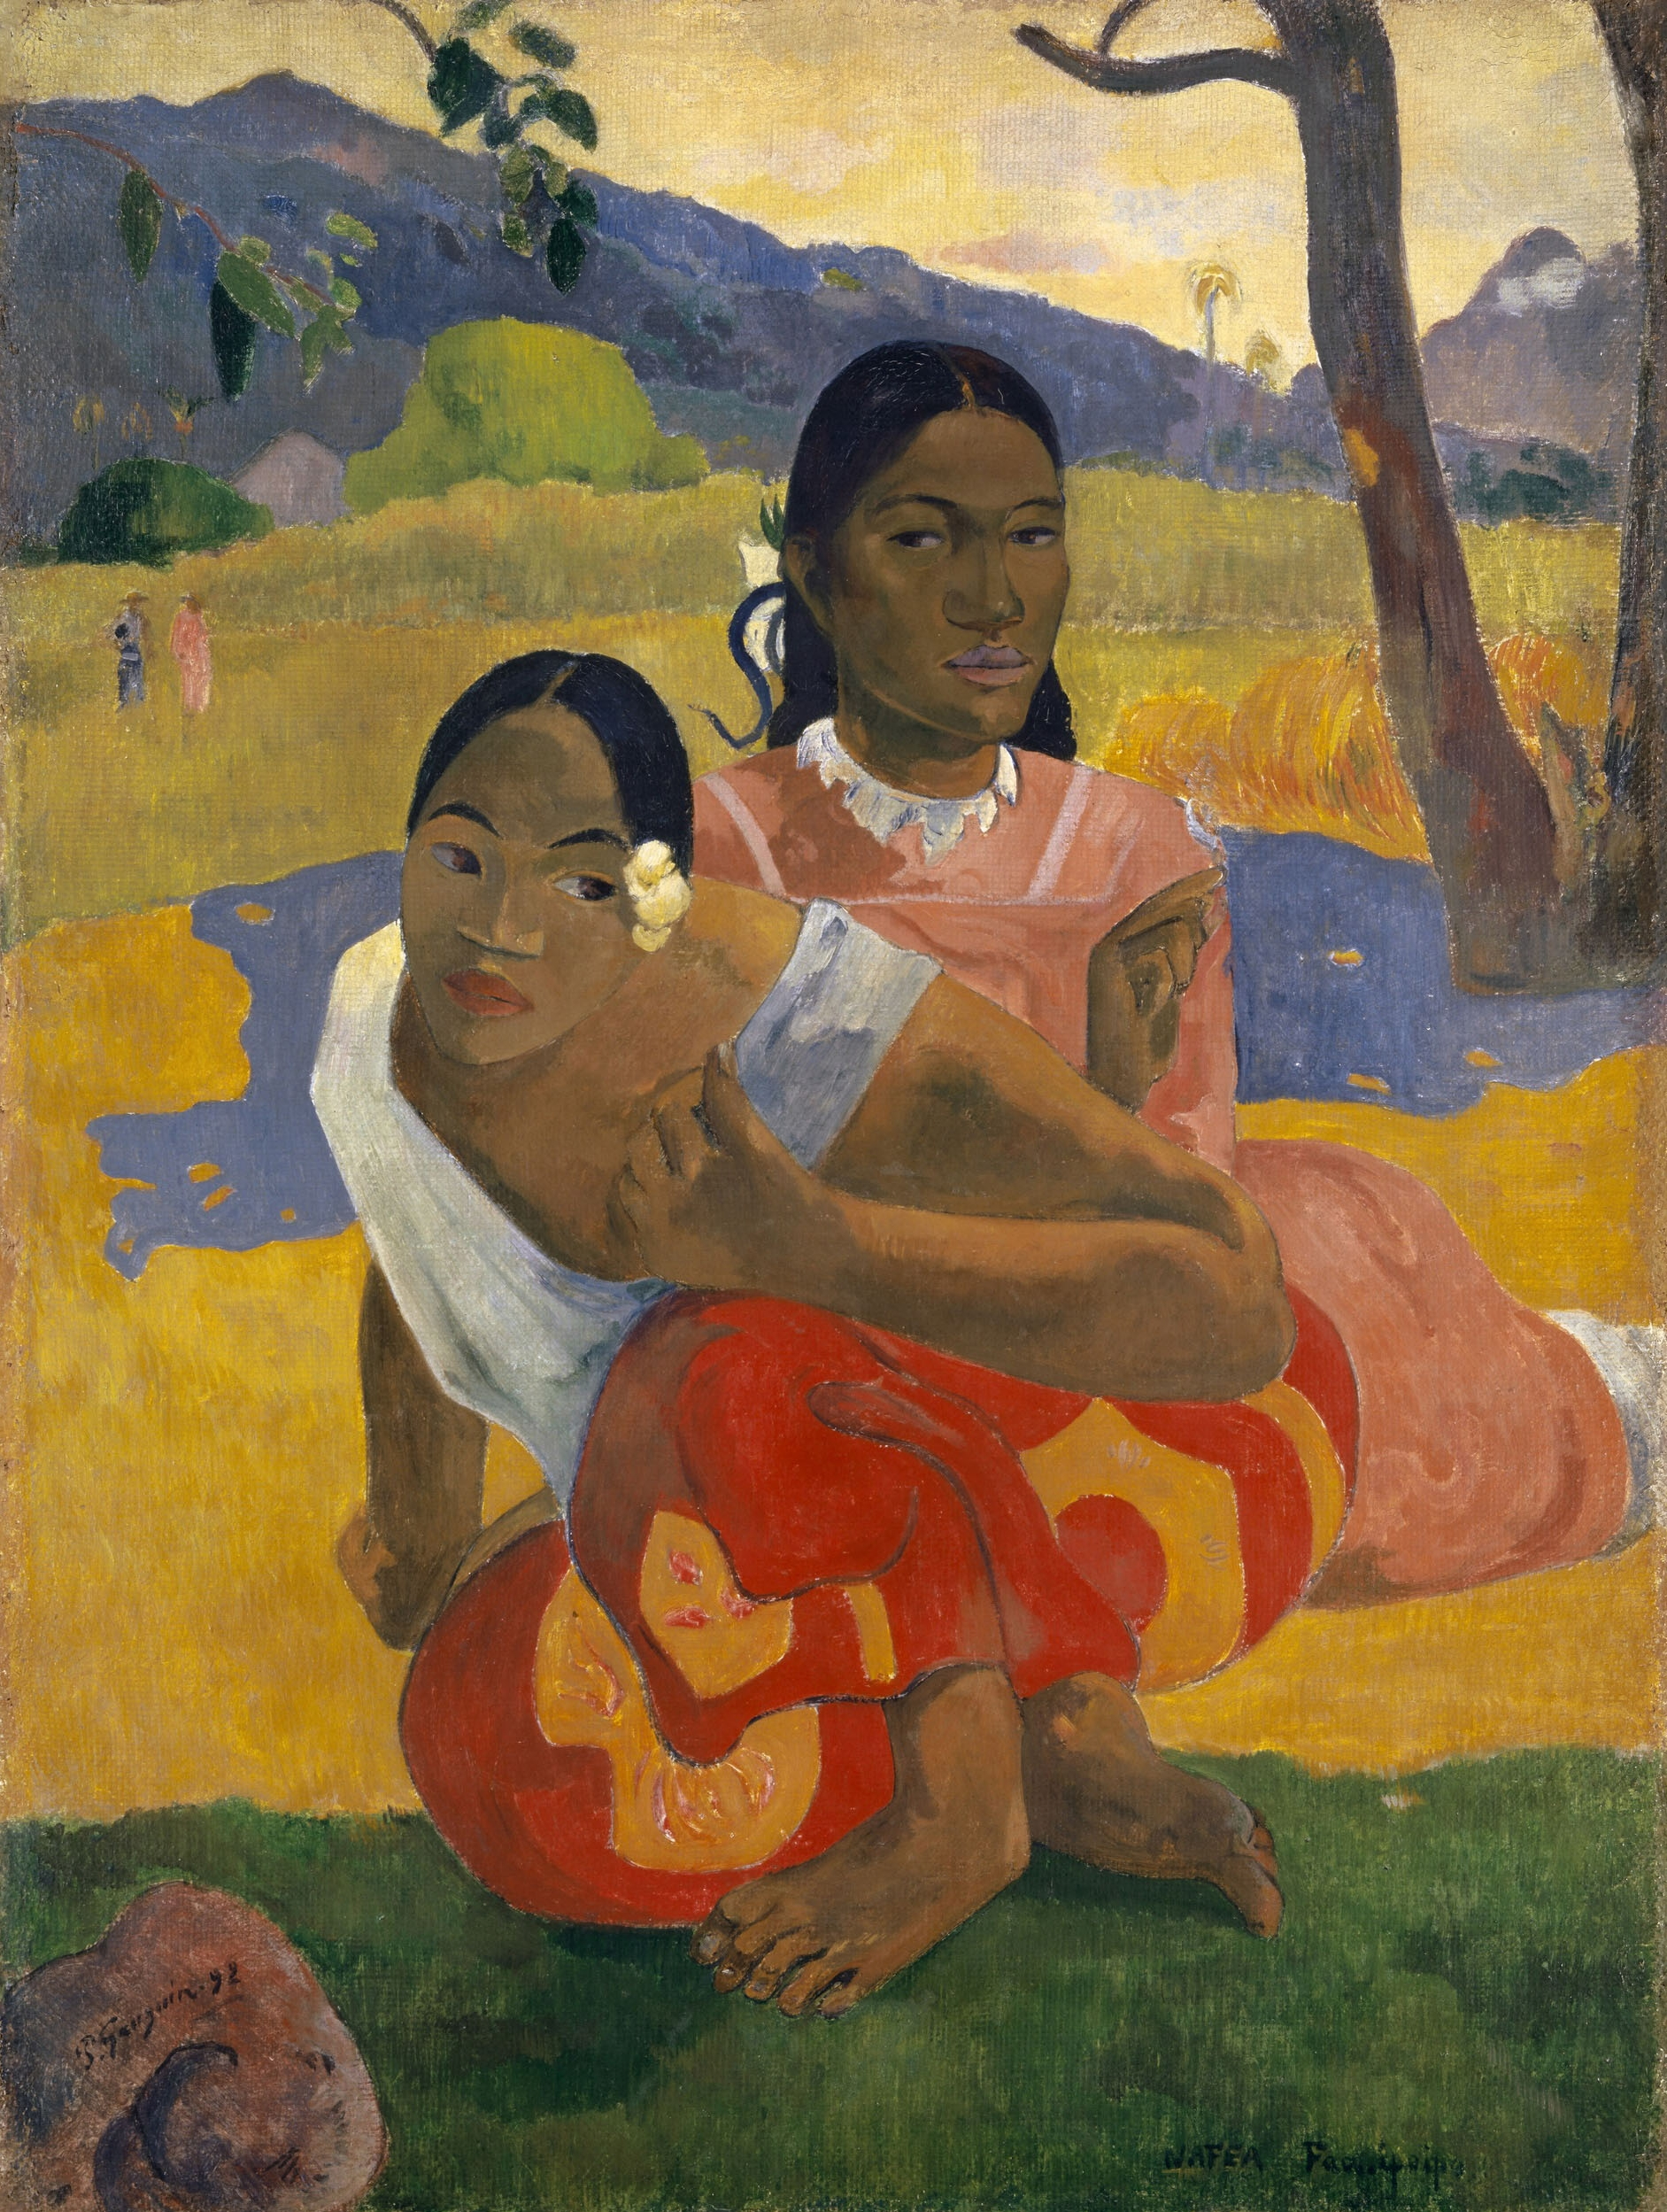 https://upload.wikimedia.org/wikipedia/commons/6/61/Paul_Gauguin%2C_Nafea_Faa_Ipoipo%3F_1892%2C_oil_on_canvas%2C_101_x_77_cm.jpg